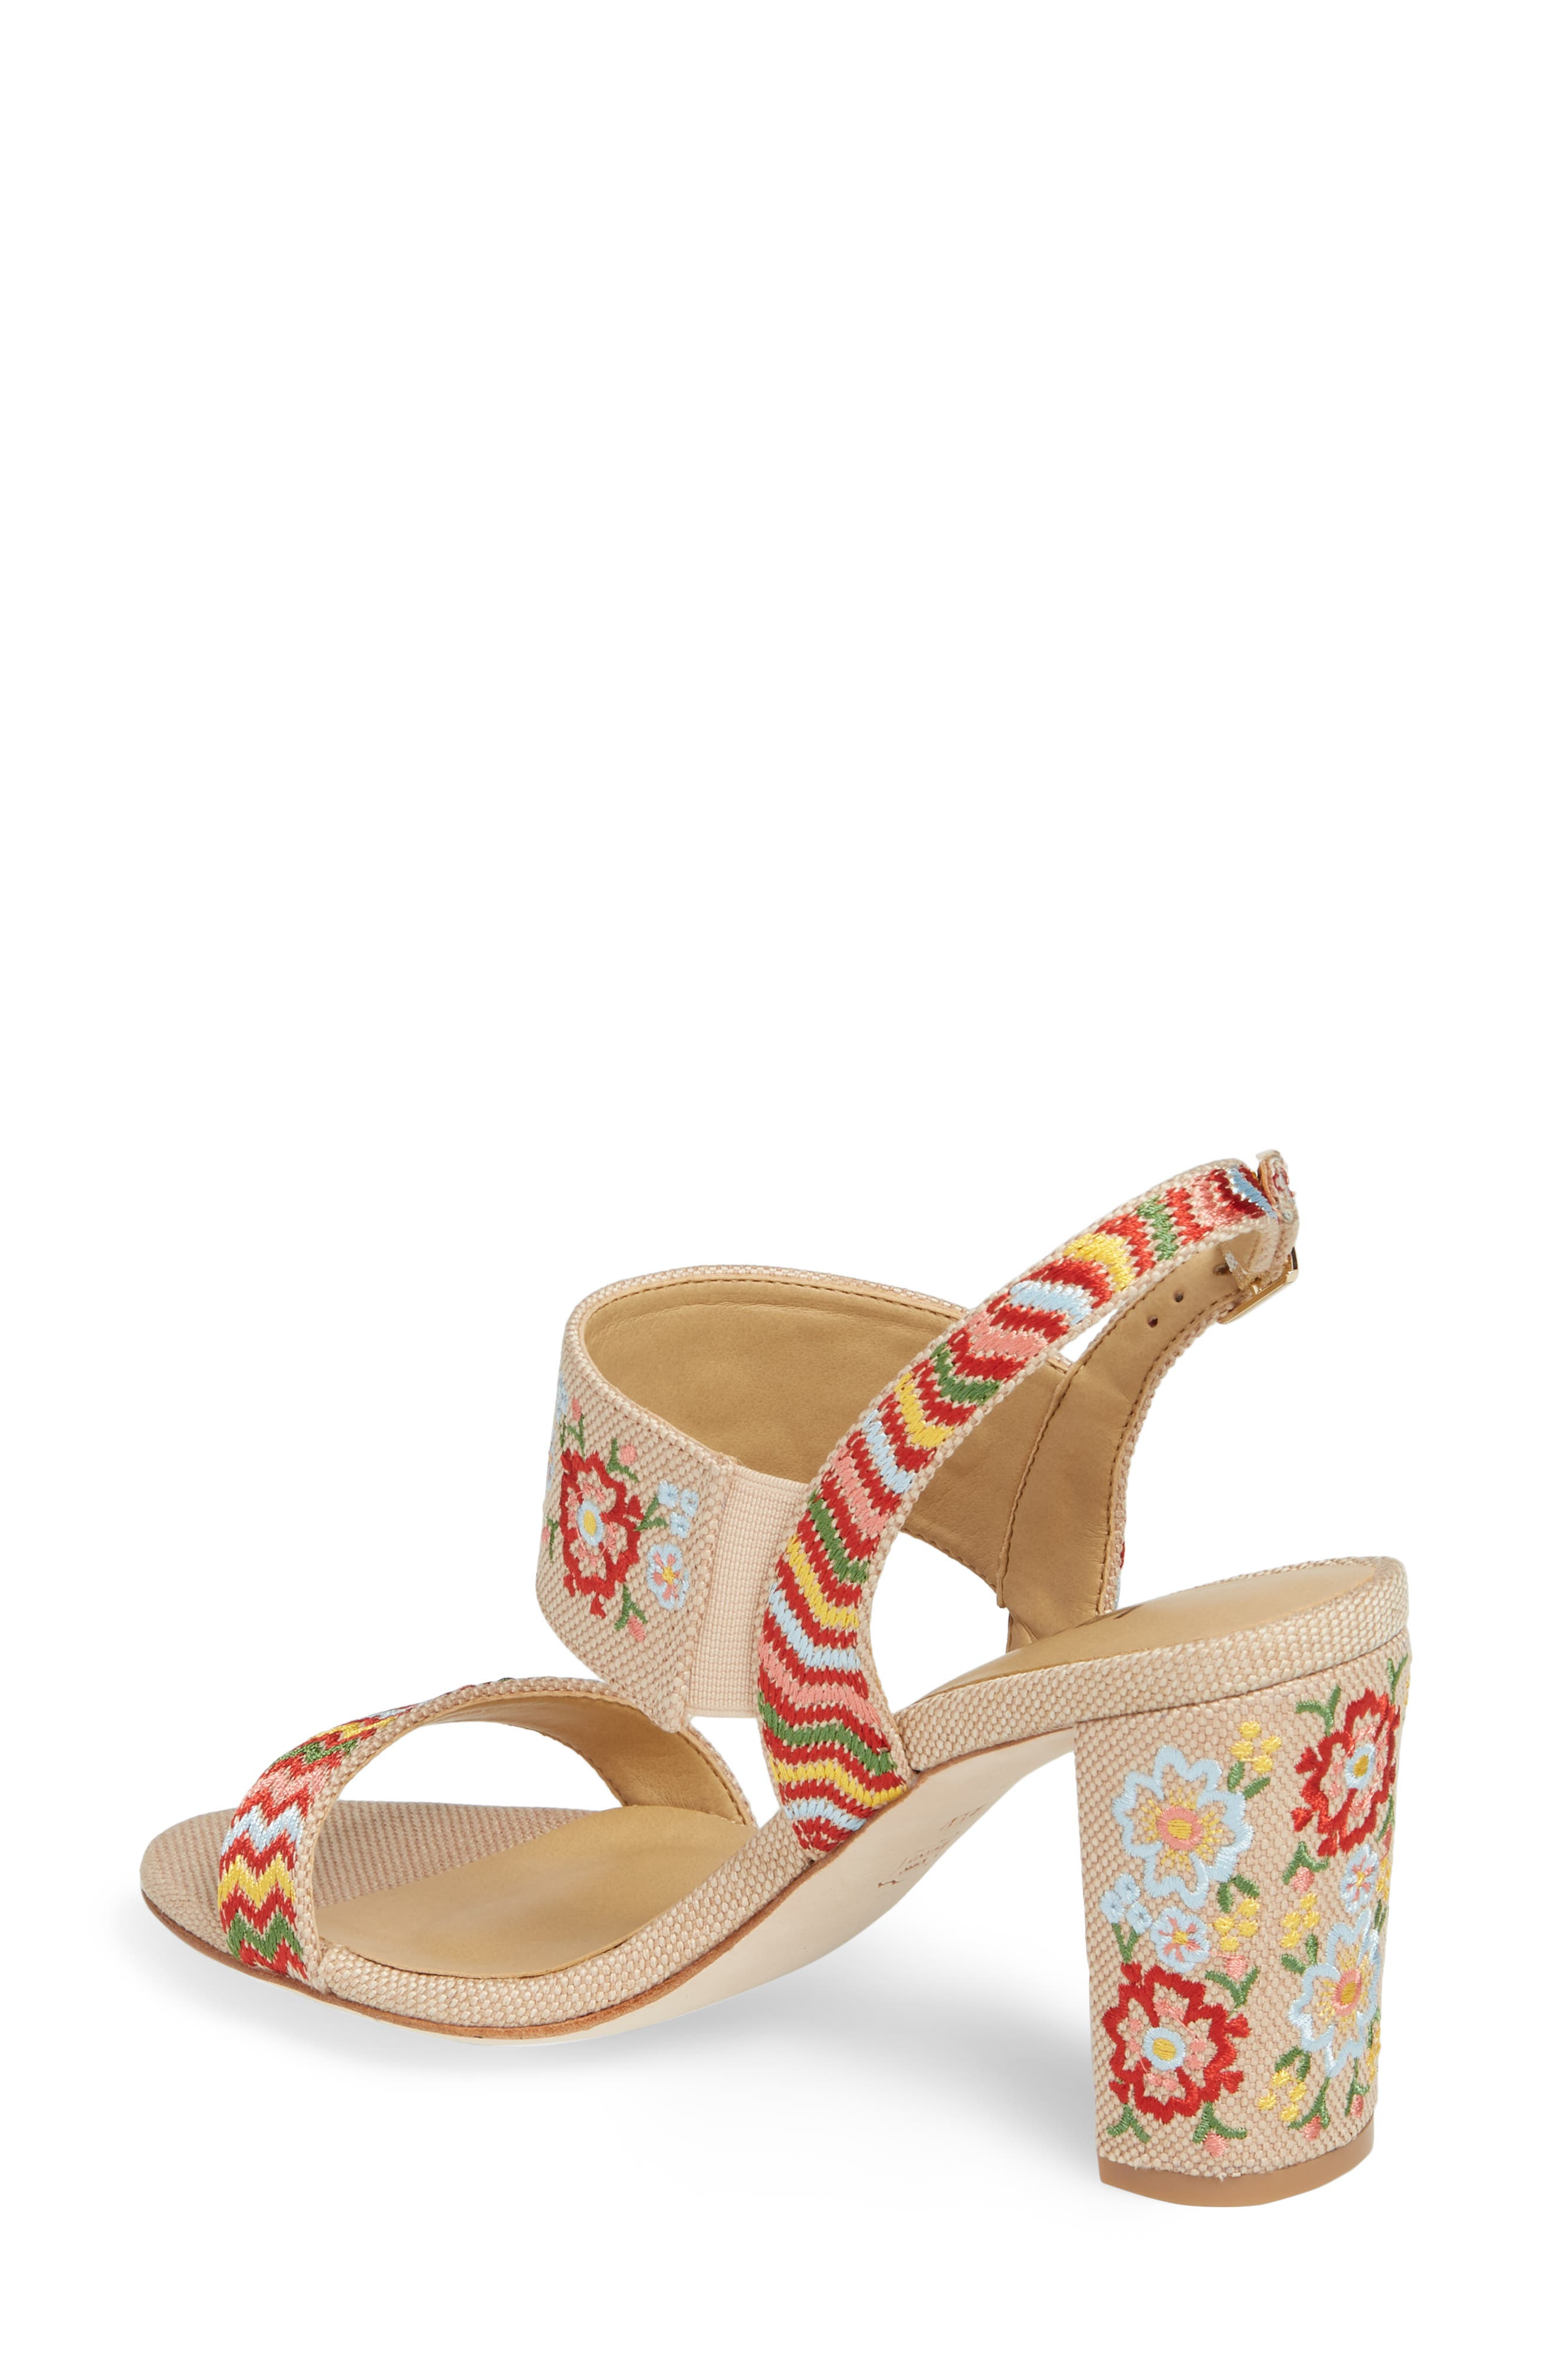 Biene Slingback Sandal,                             Alternate thumbnail 2, color,                             250